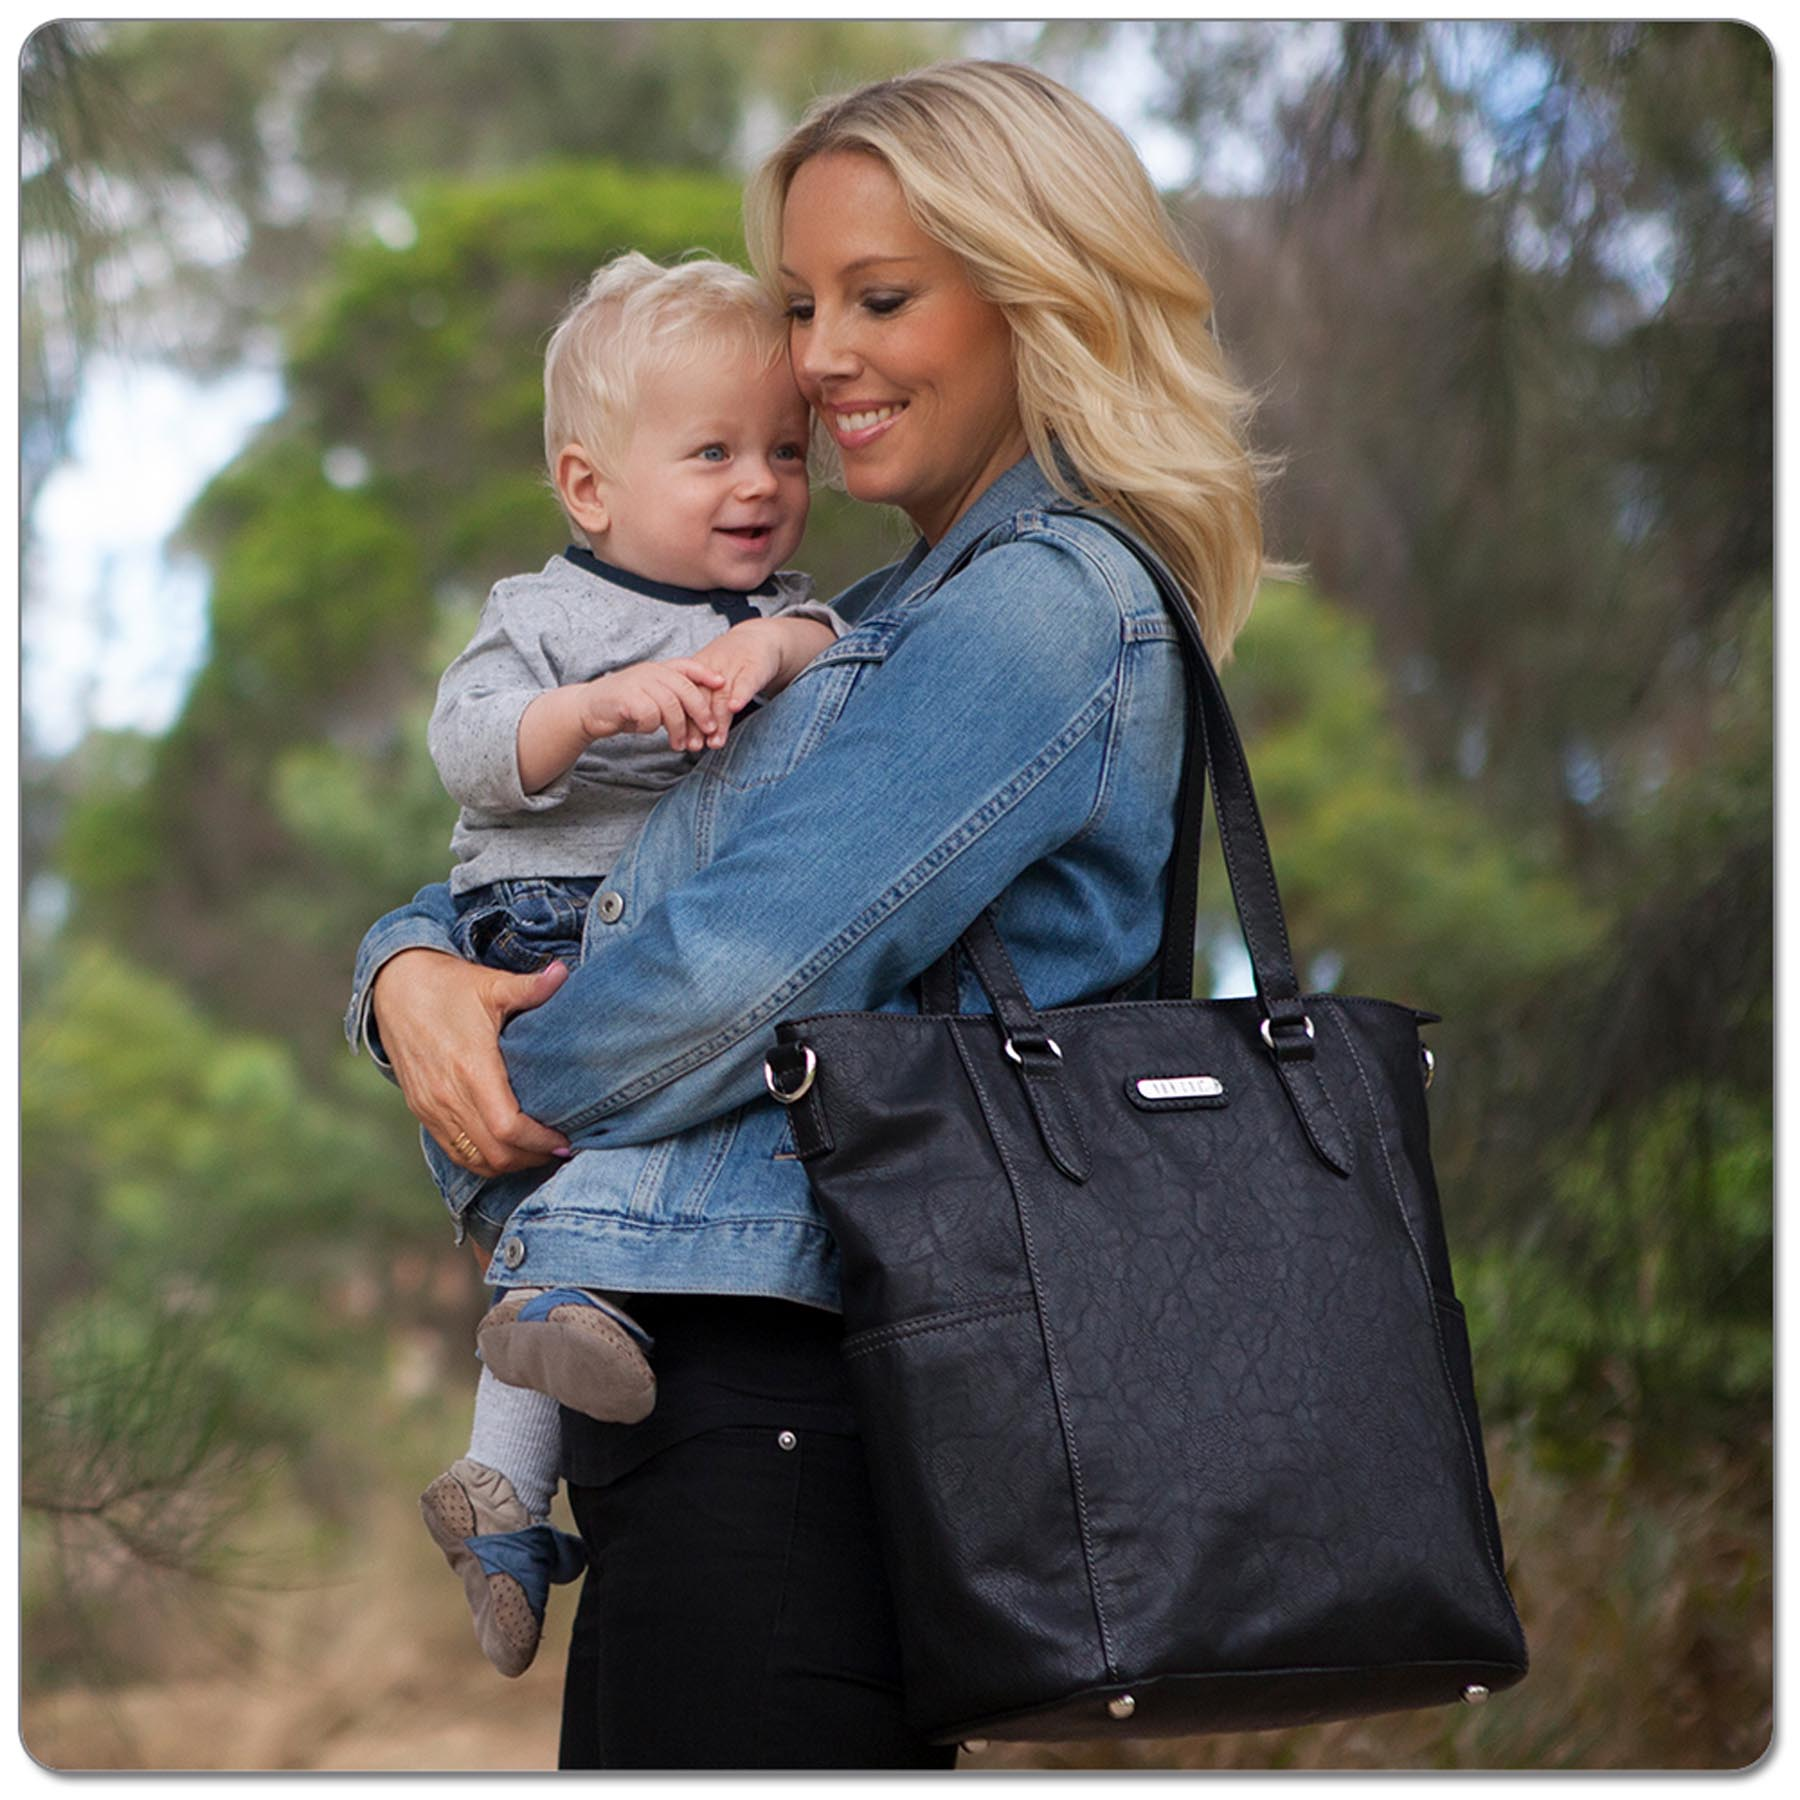 VANCHI CAPRI TOTE BLACK www.motherbynature.com.au tote black baby bag nappy bag tote bag diaper bag vanchi